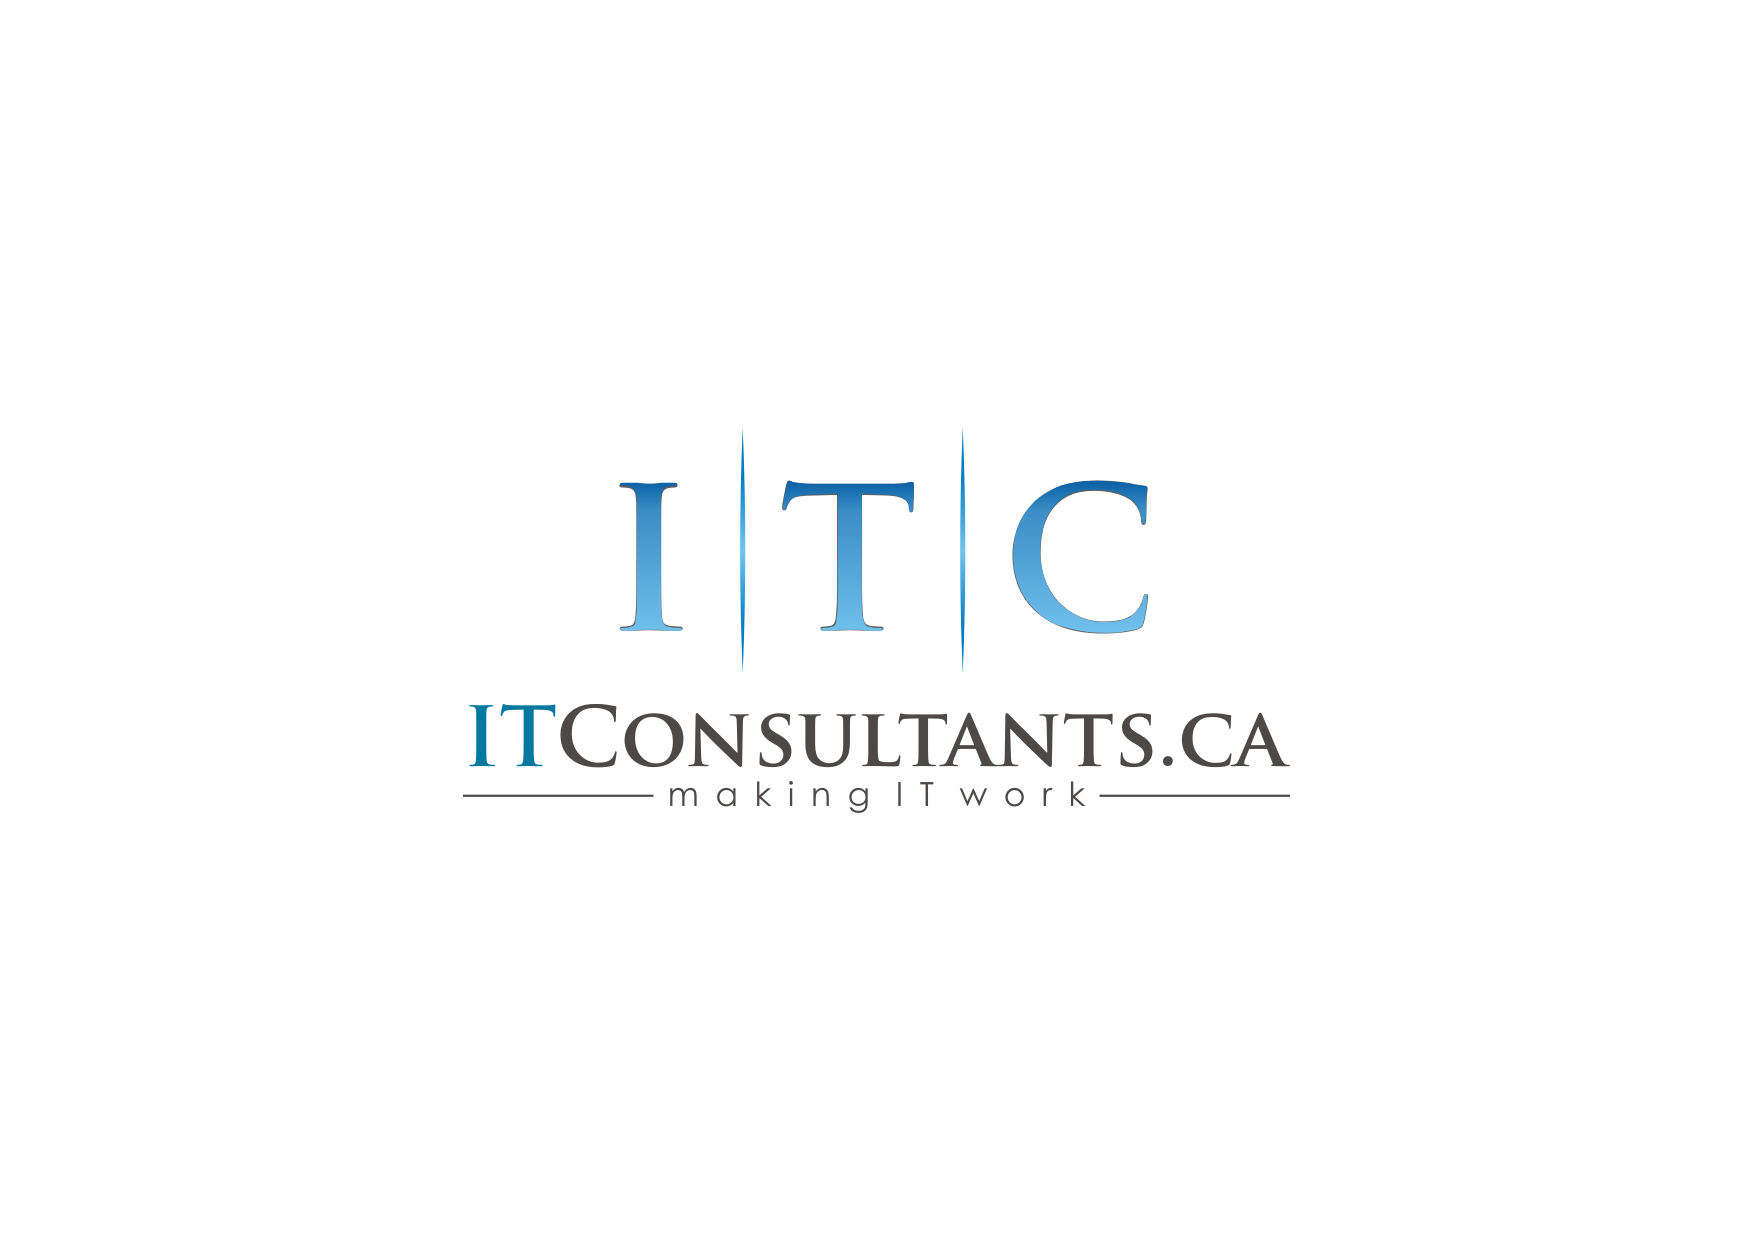 New logo wanted for ITC: A new startup!